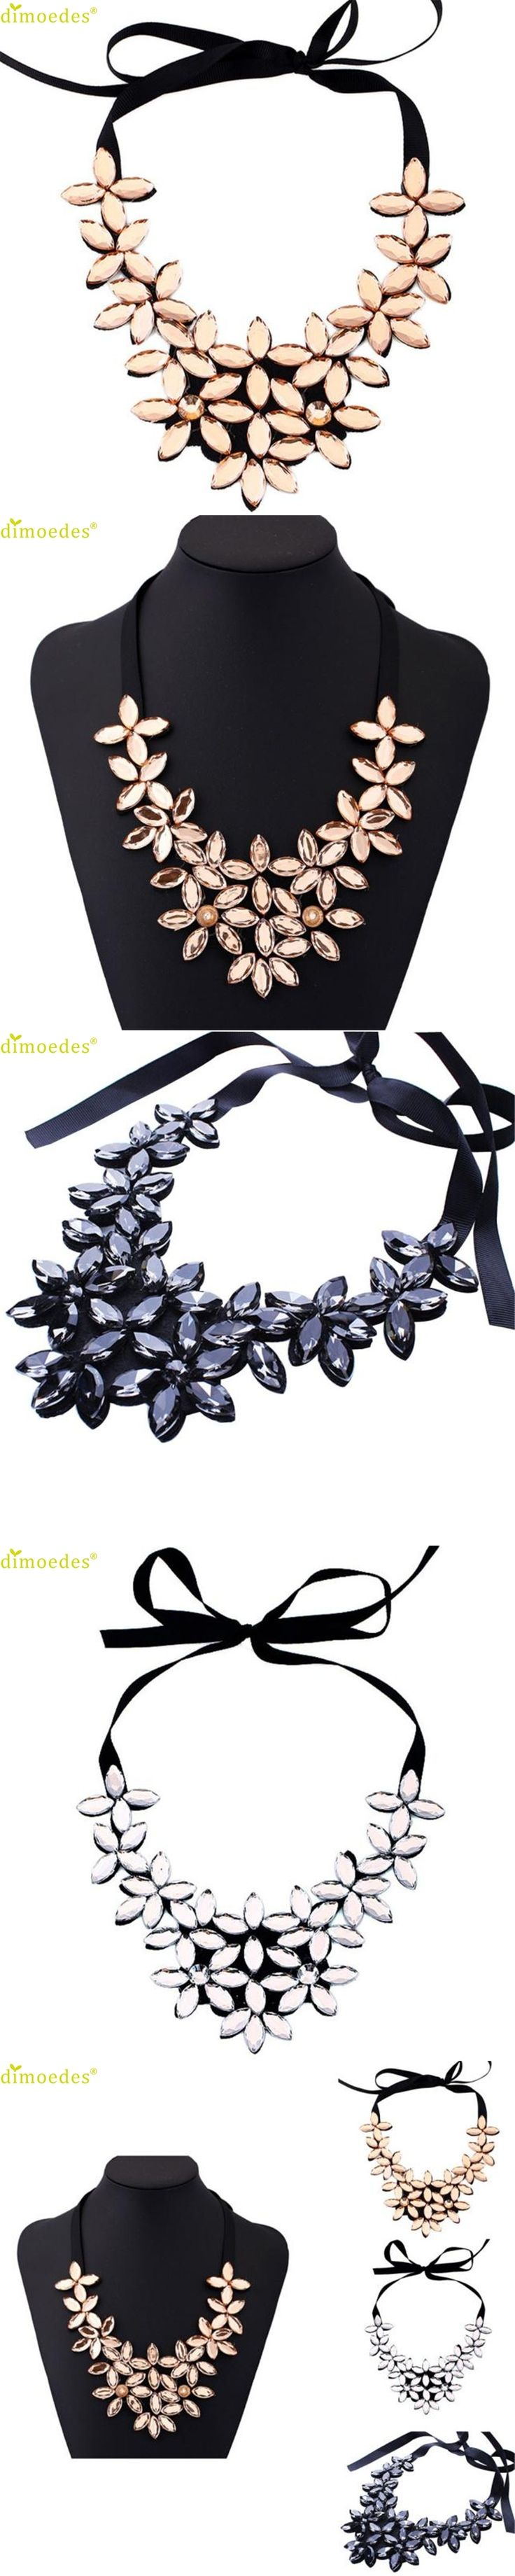 Diomedes Koly New  Necklace Women Flower Ribbon Chain Short Necklace Pendant Crystal Choker Chunky Collar Necklace Gift Choker